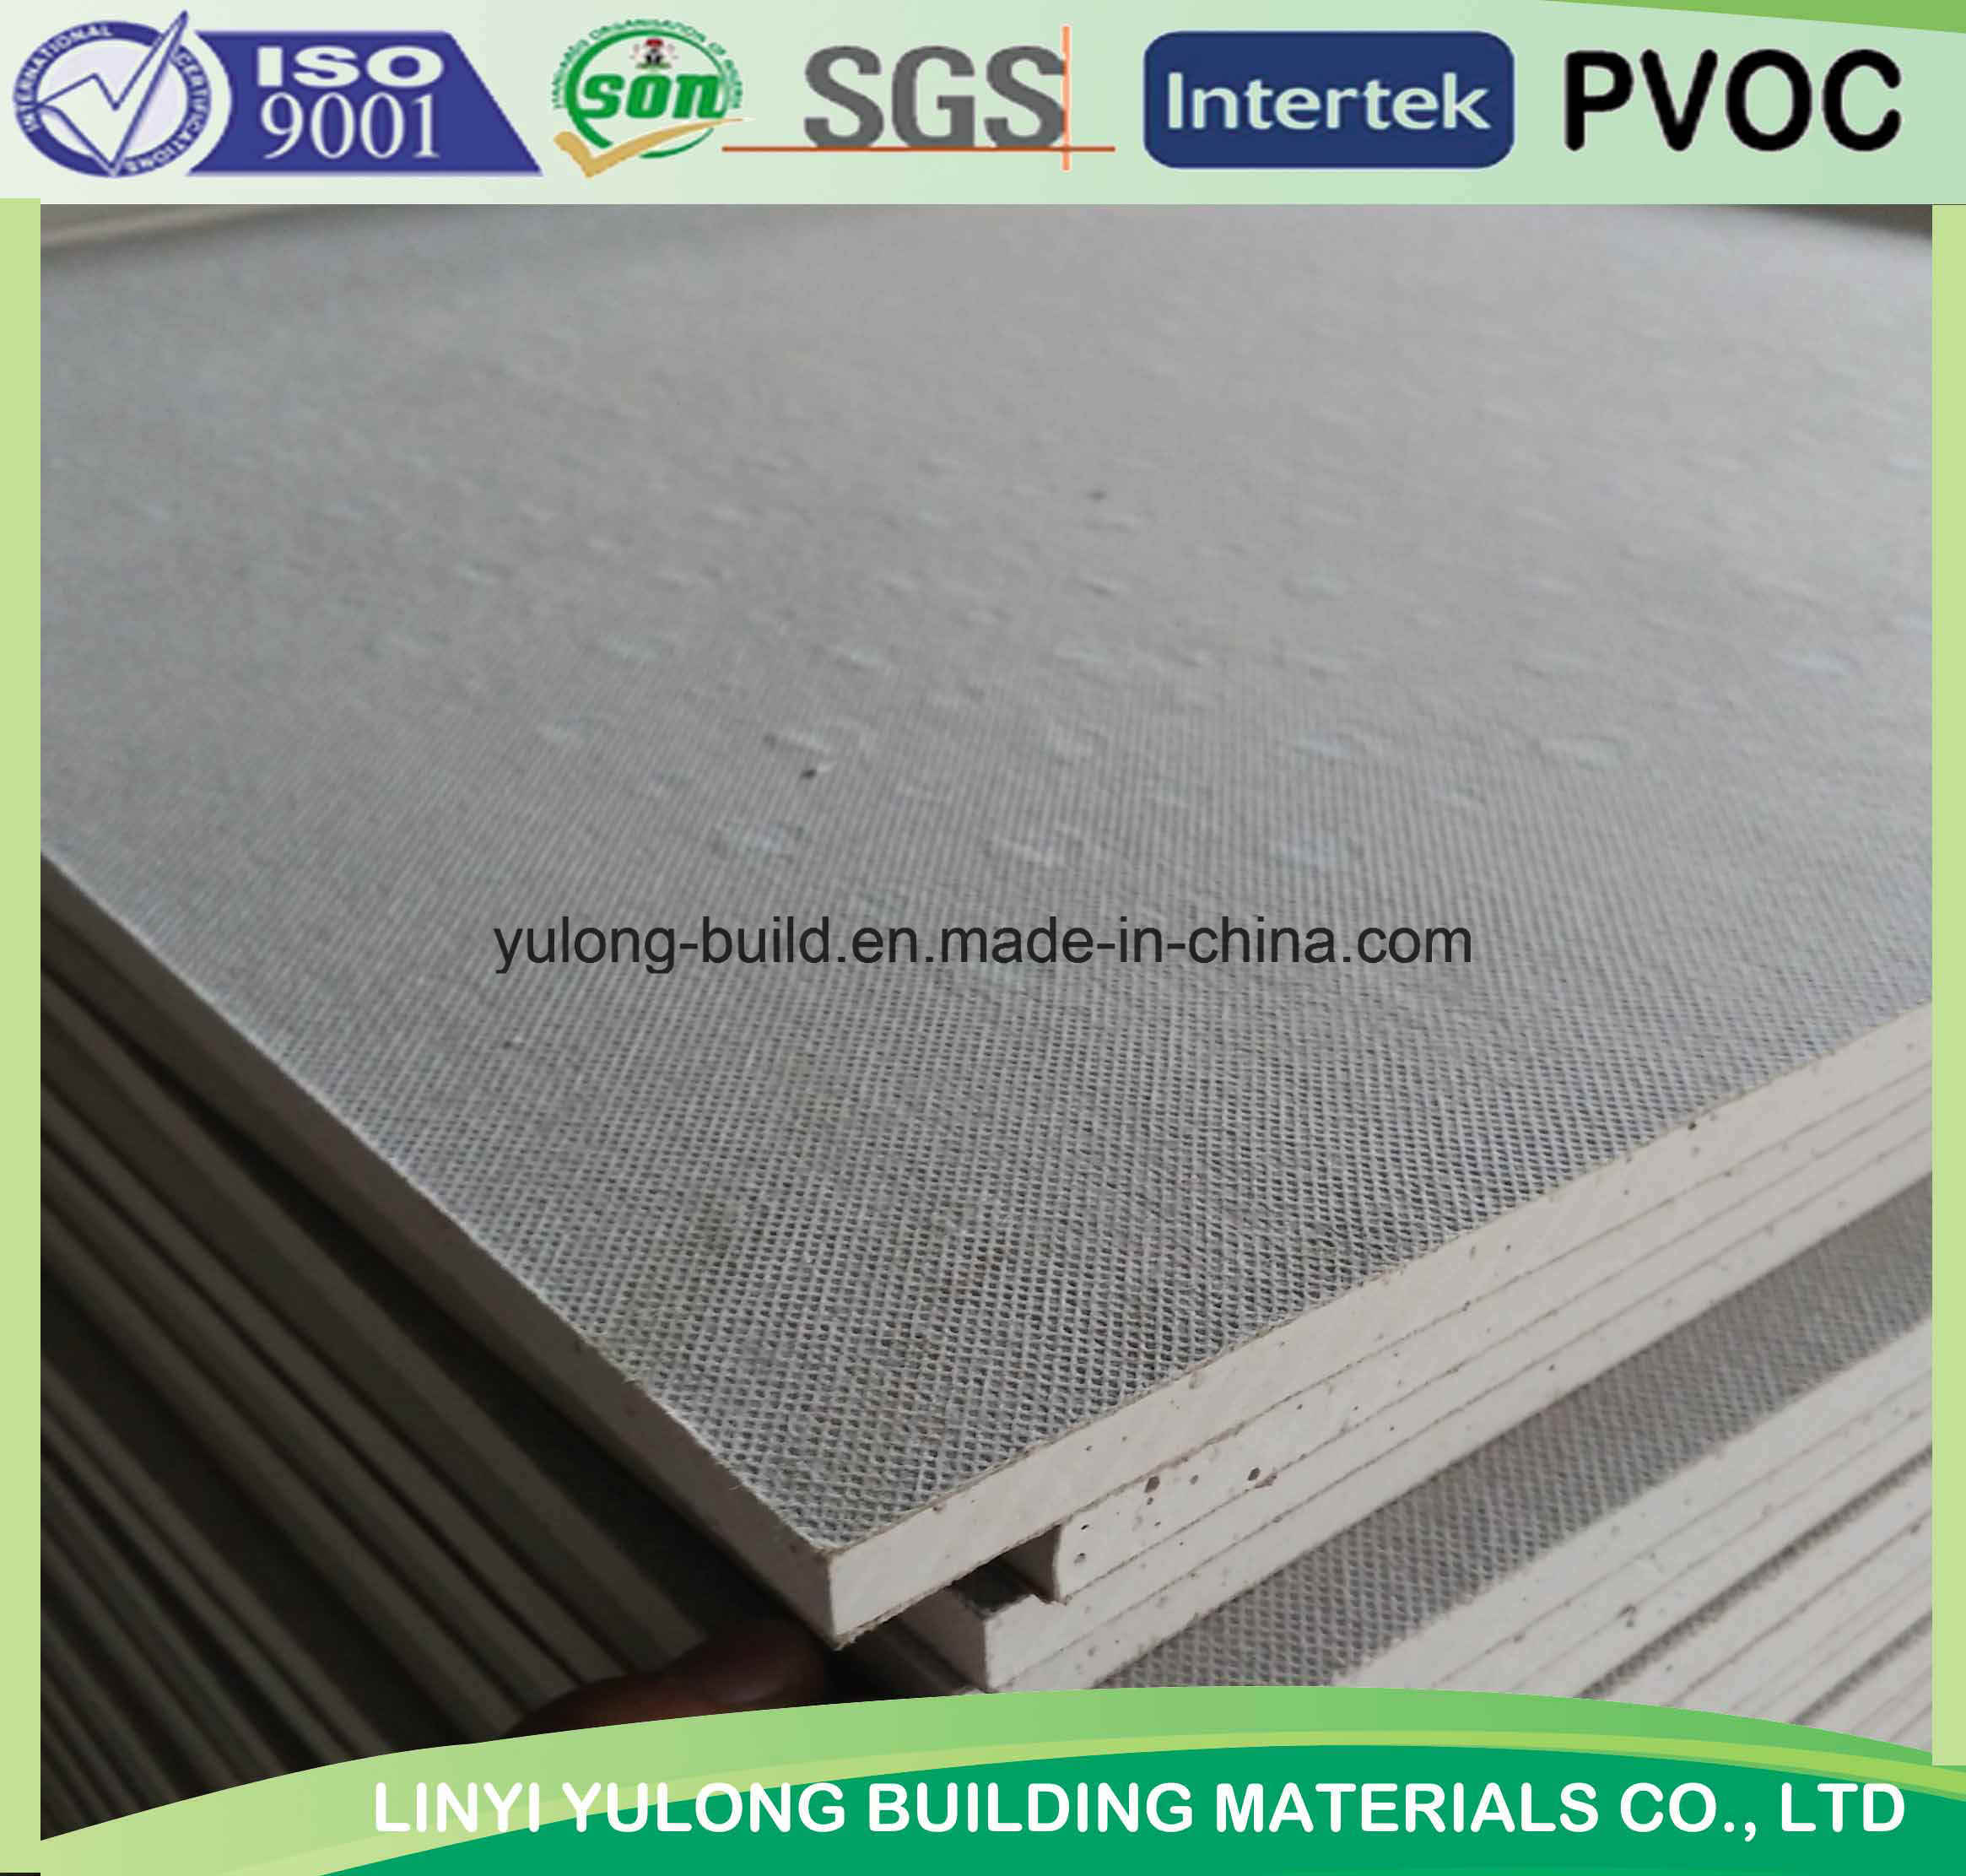 China acoustic sound absorbperforated gypsum ceiling tiles china acoustic sound absorbperforated gypsum ceiling tiles china sound absorb gypsum board gypsum board with holes dailygadgetfo Choice Image